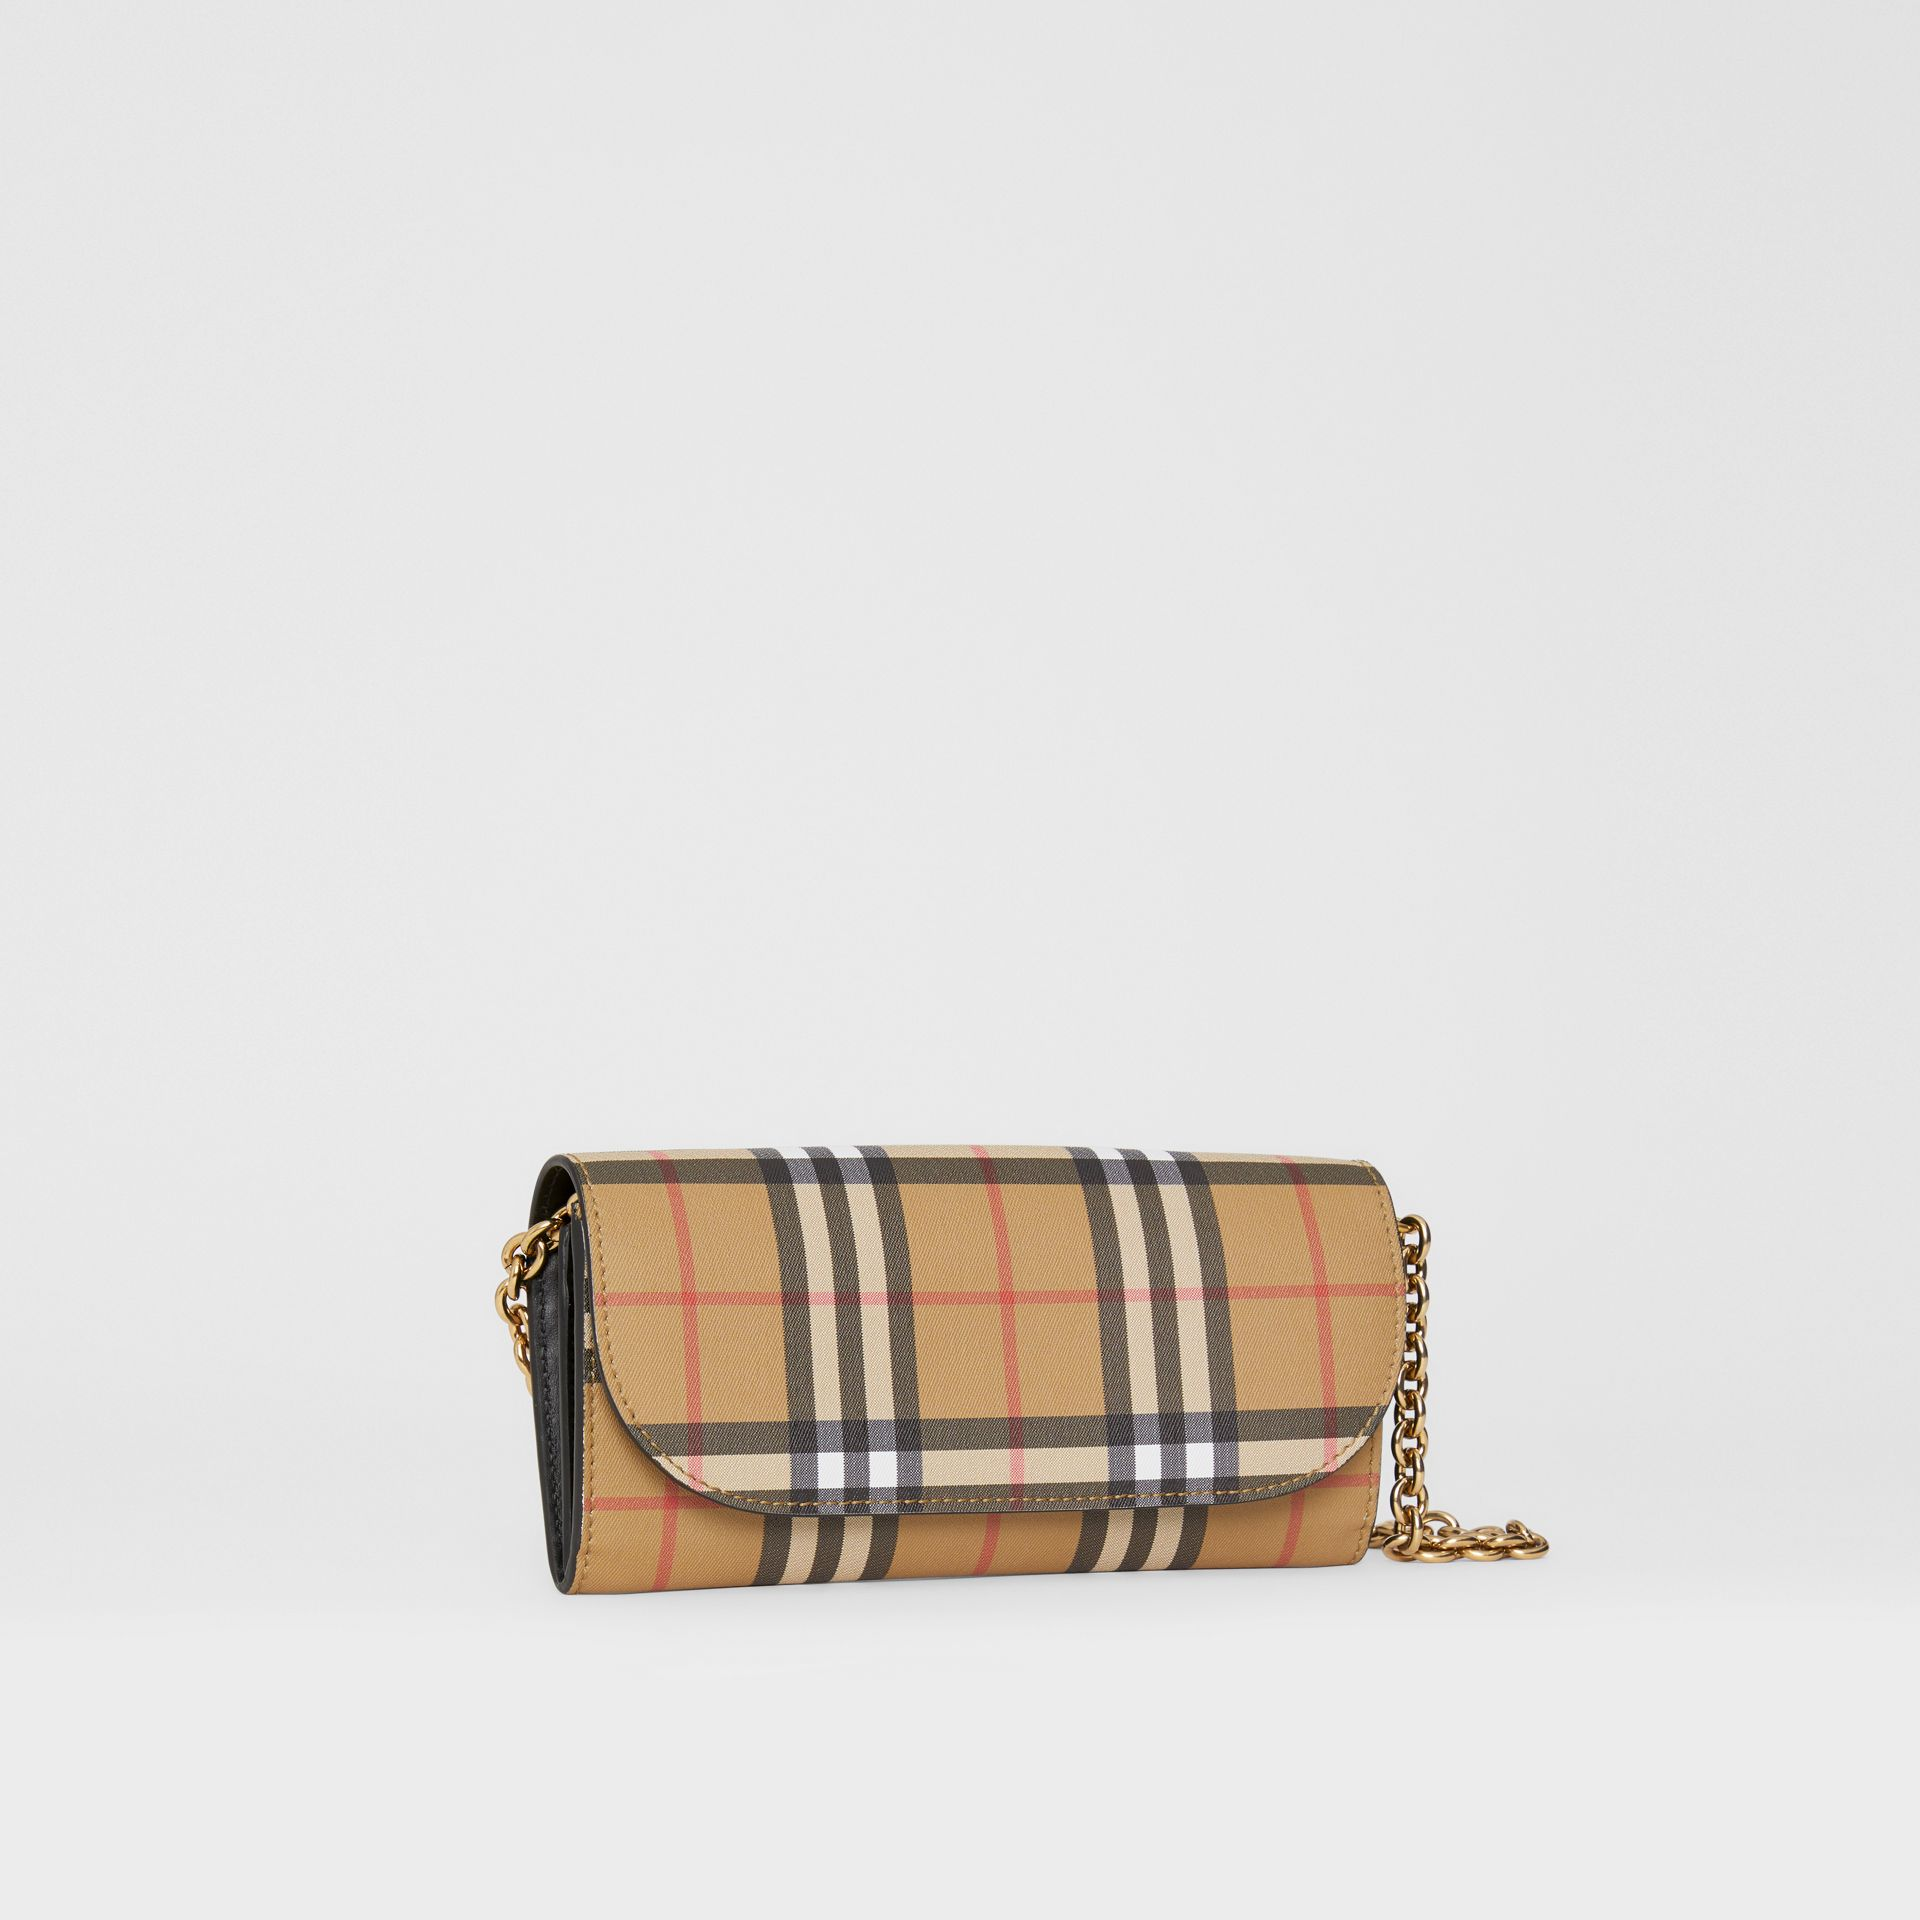 Vintage Check and Leather Wallet with Chain in Black - Women | Burberry Australia - gallery image 6